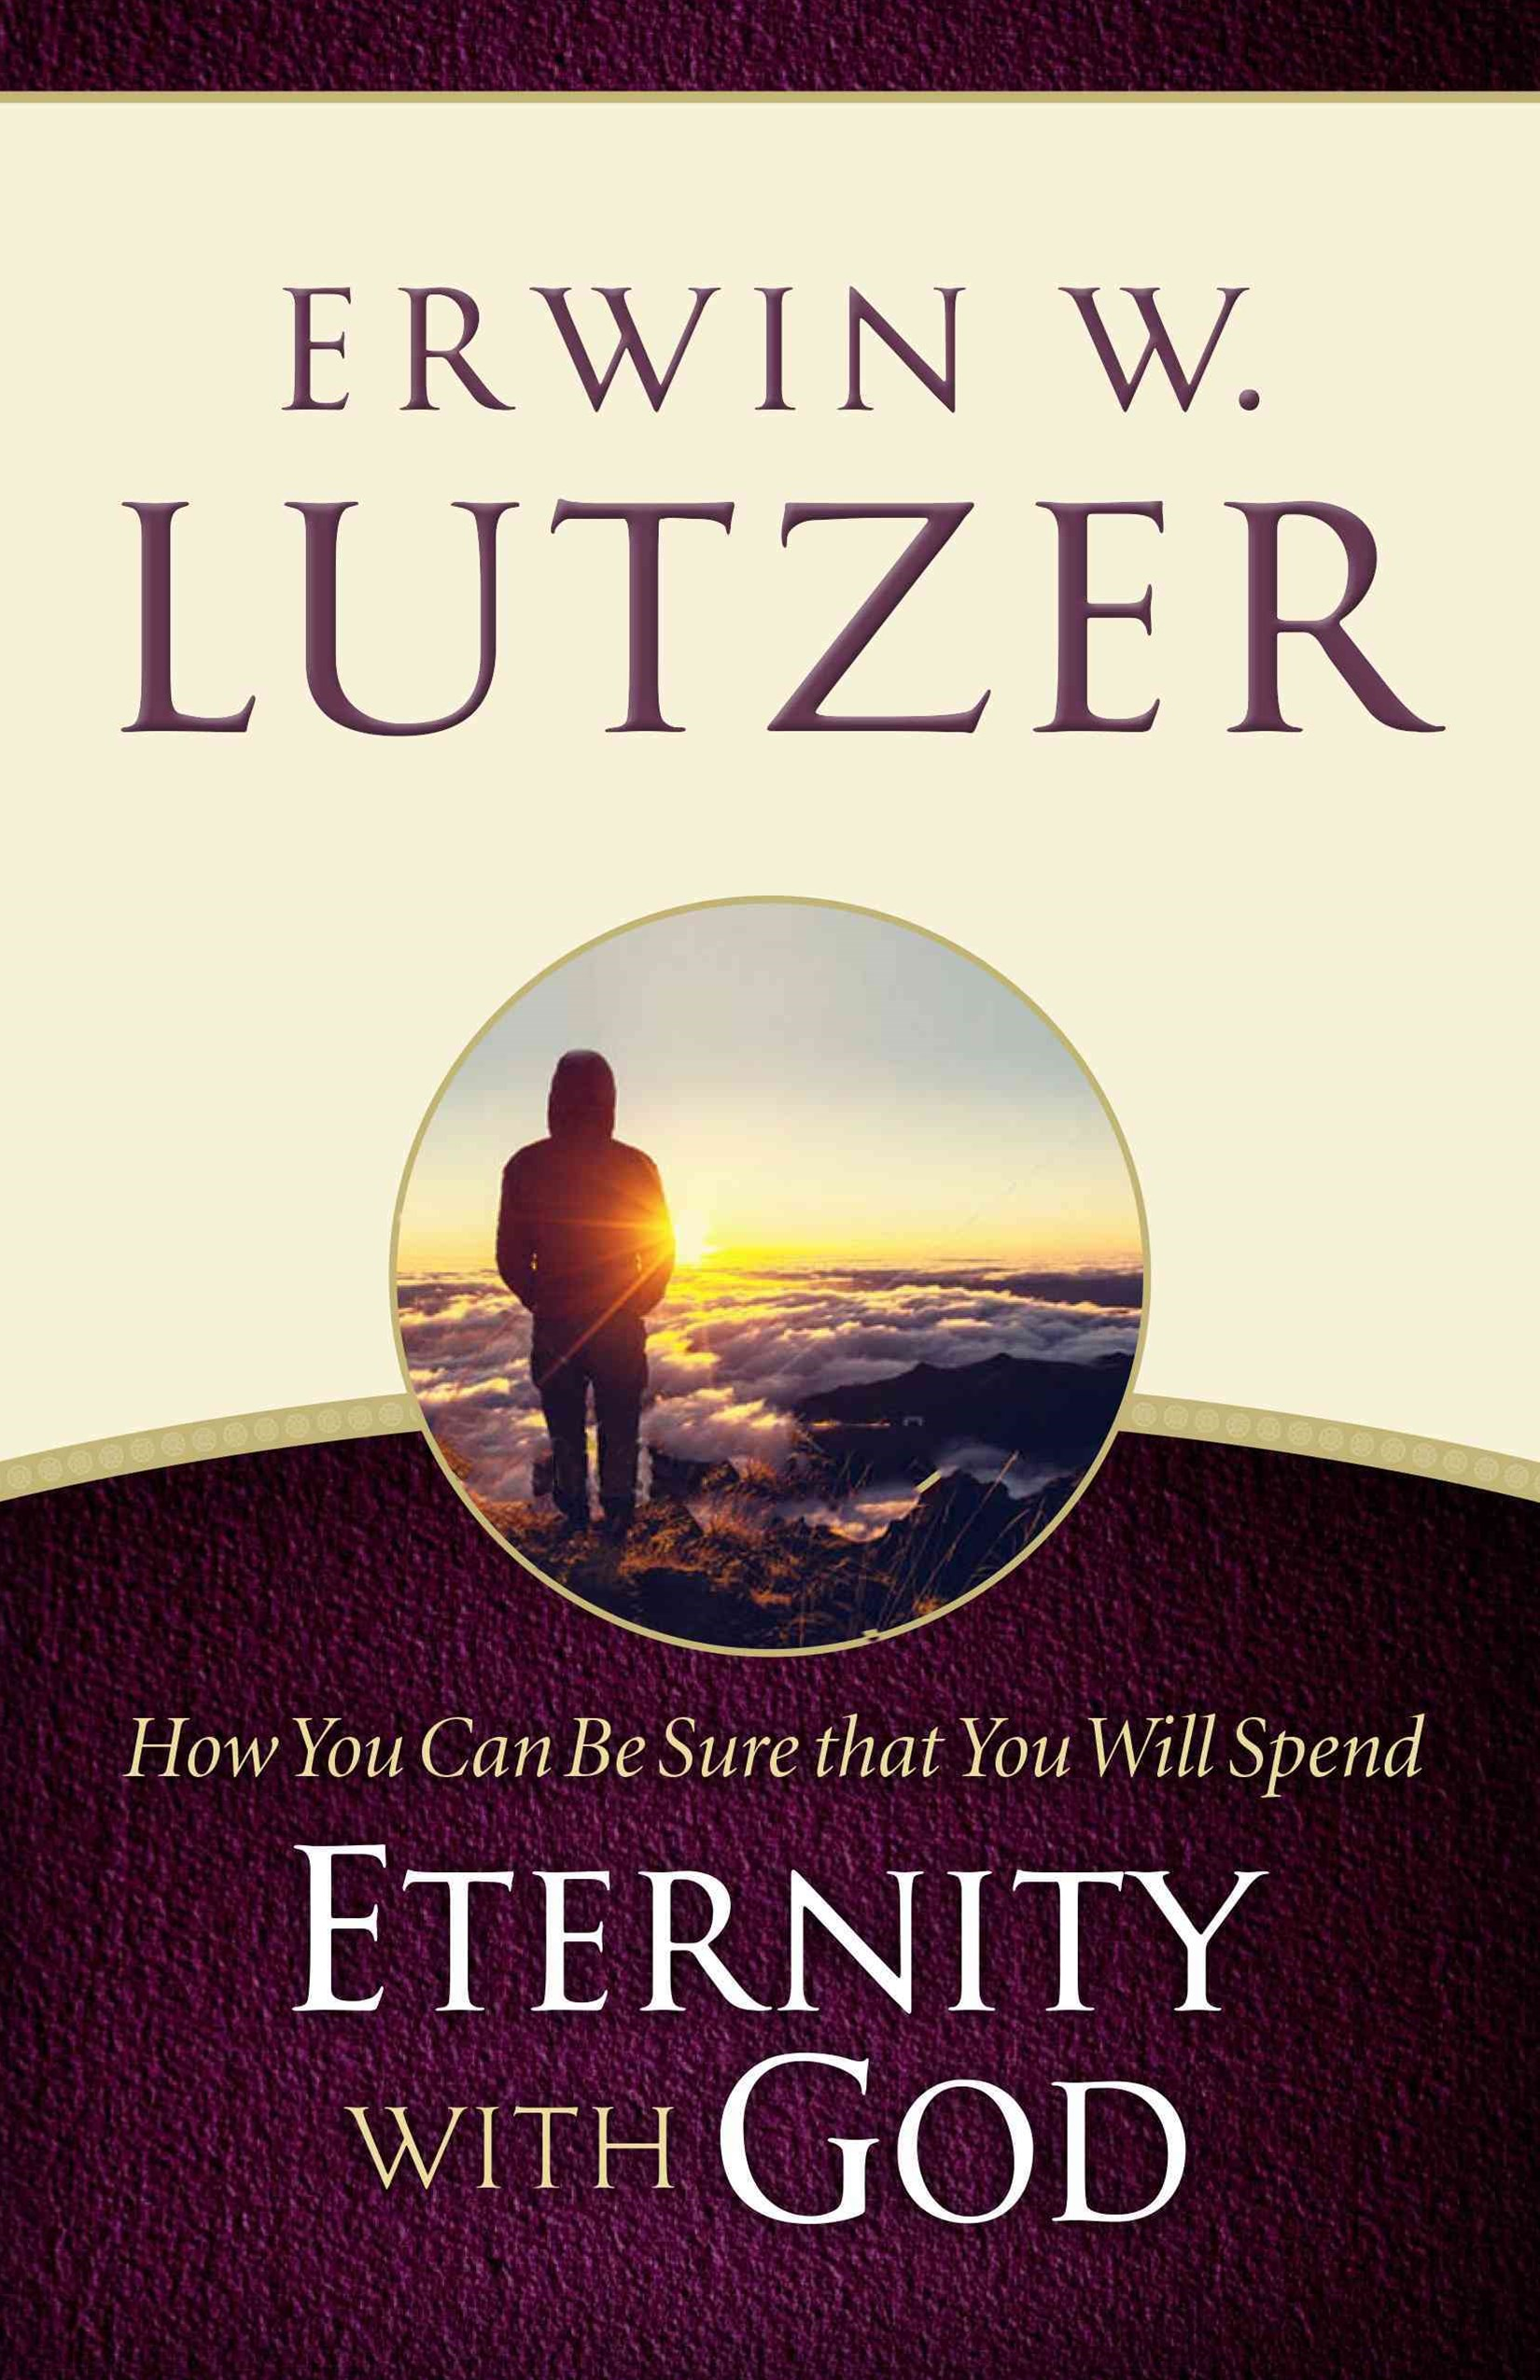 How You Can Be Sure That You Will Spend Eternity with God